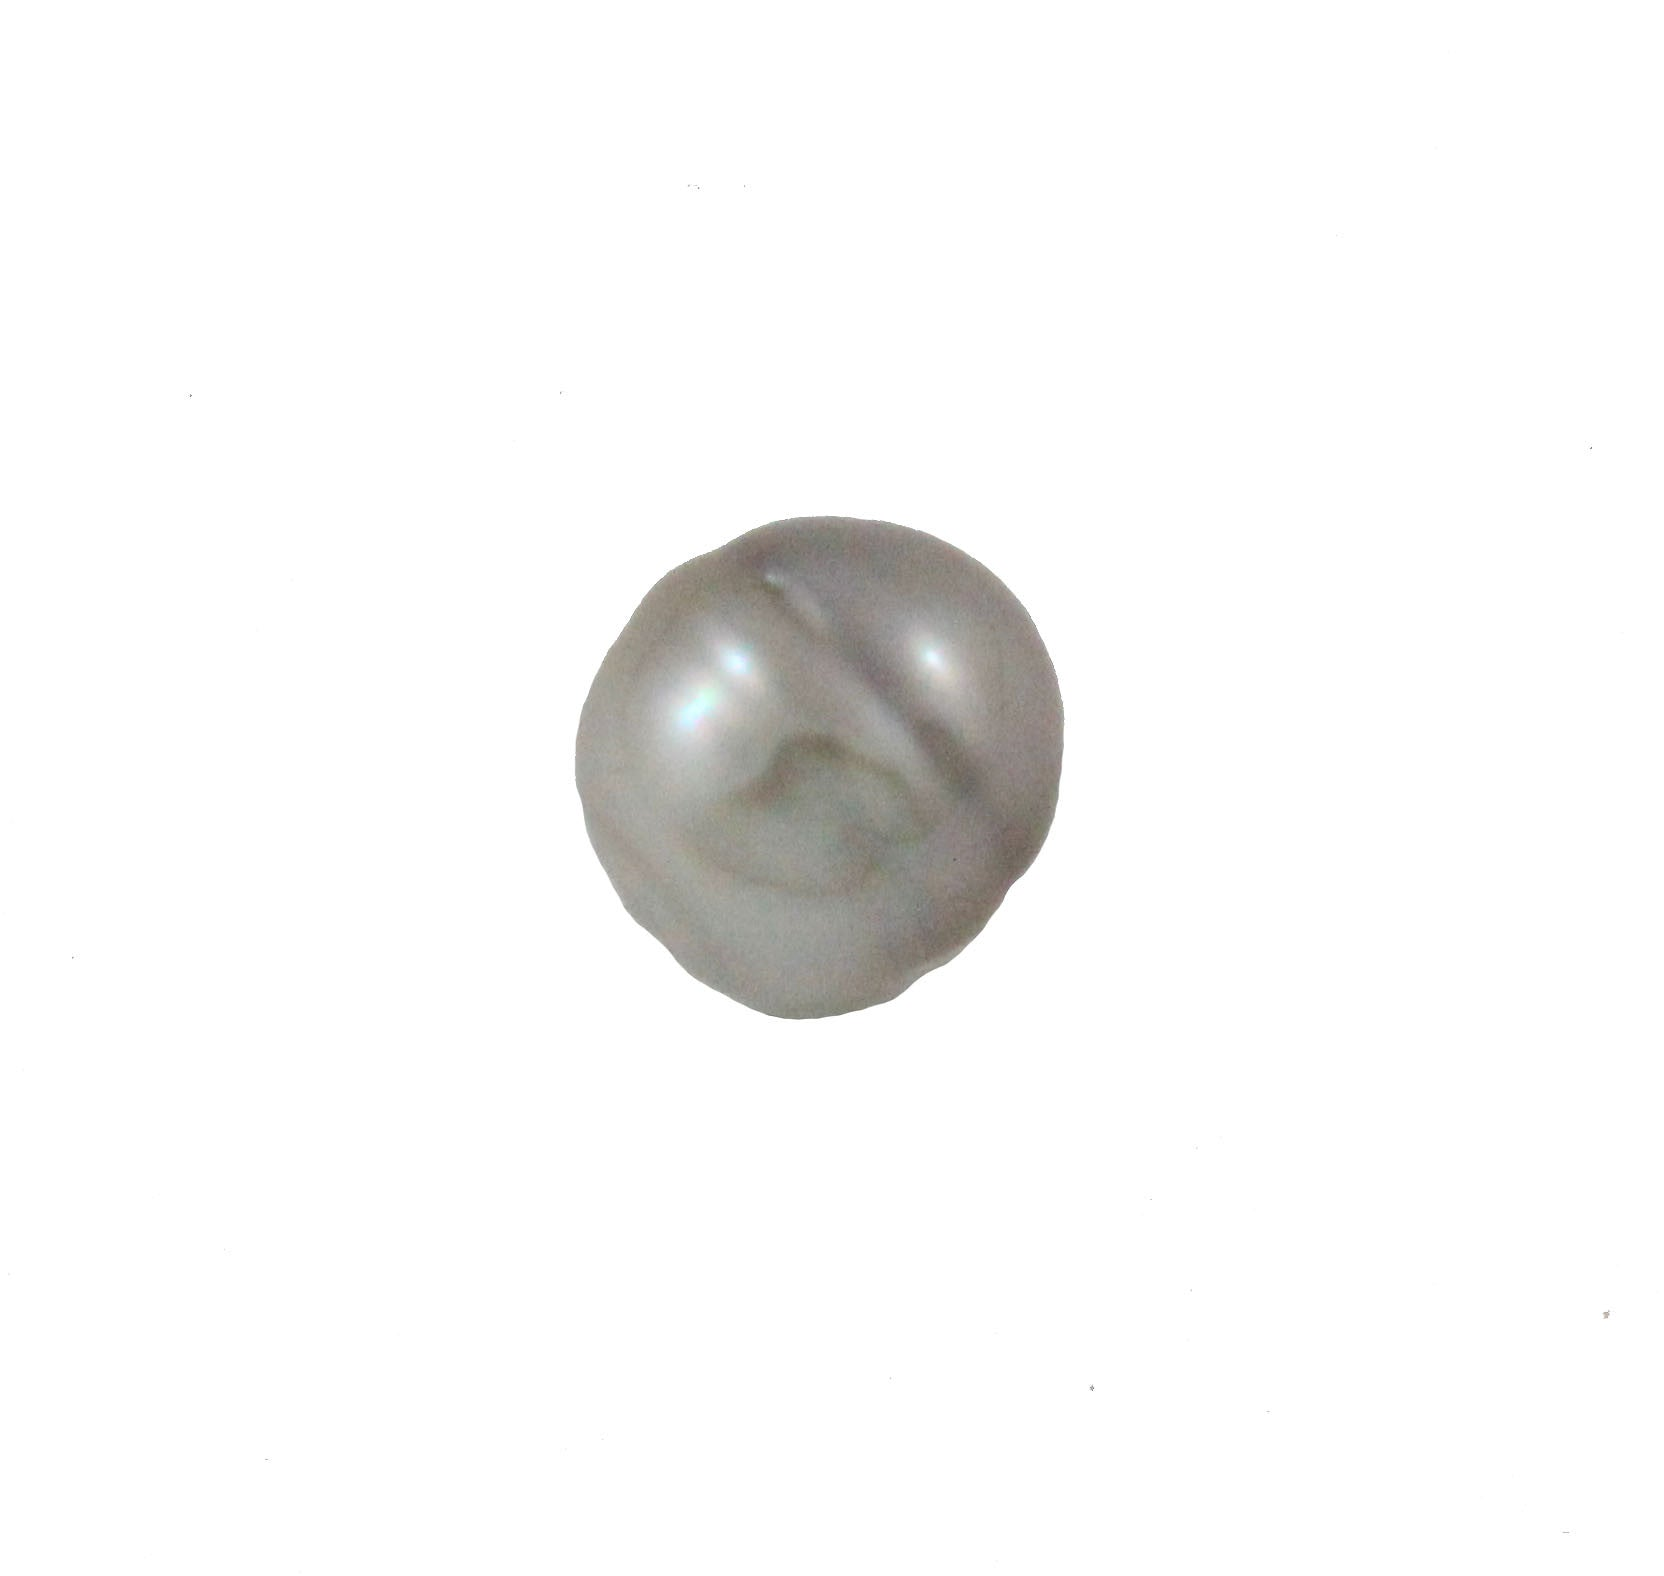 Tahitian pearl undrilled 1.05gr 9.5x9mm - Purchase only with custom order - Sarah Hughes - 4